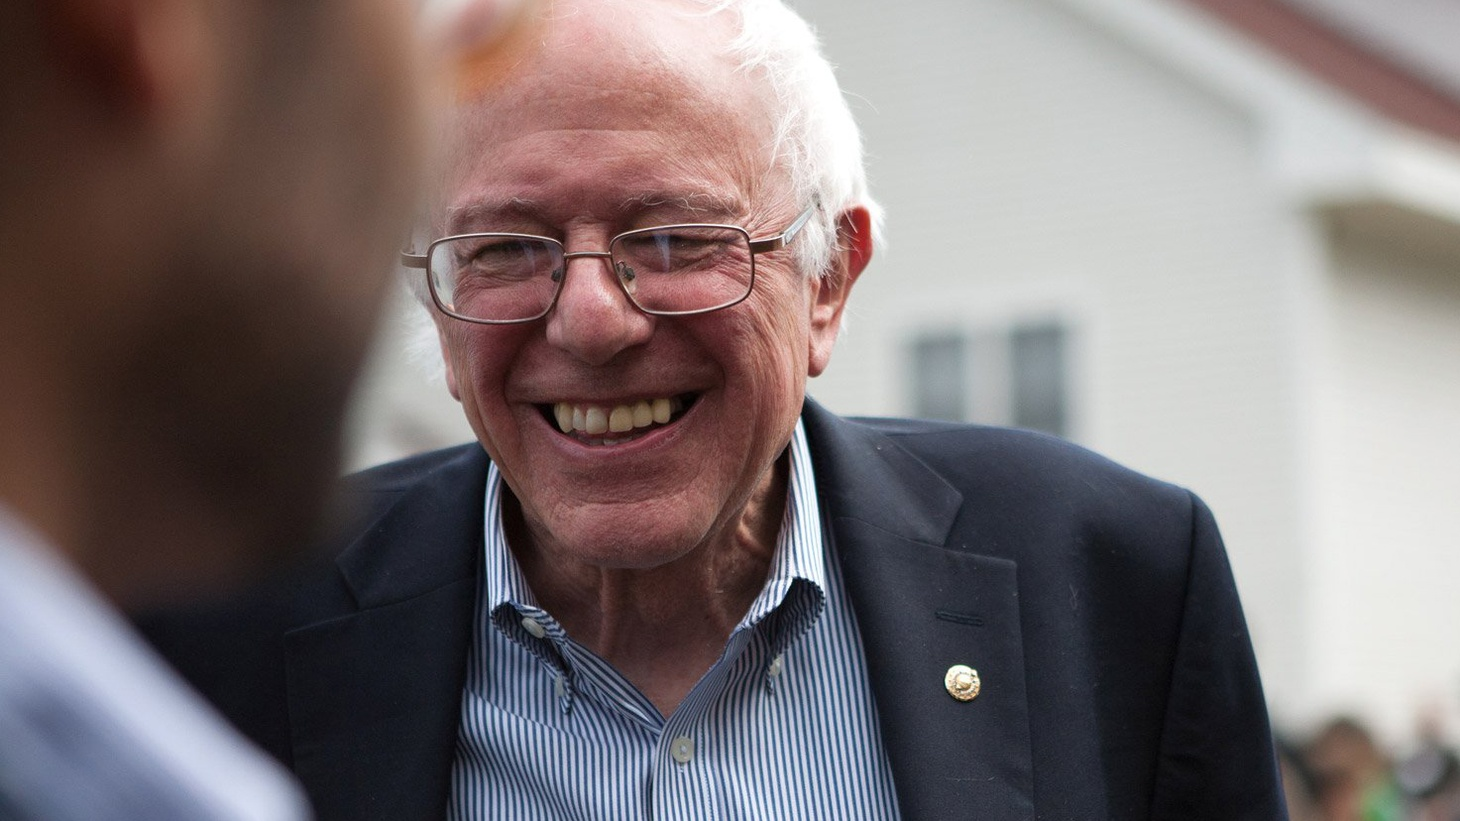 Today we start with a look at Bernie Sanders' campaign, his chances of winning today's New Hampshire primary and the demographics of his supporters. Also, will Congress stay gridlocked no matter who wins this year's presidential election?